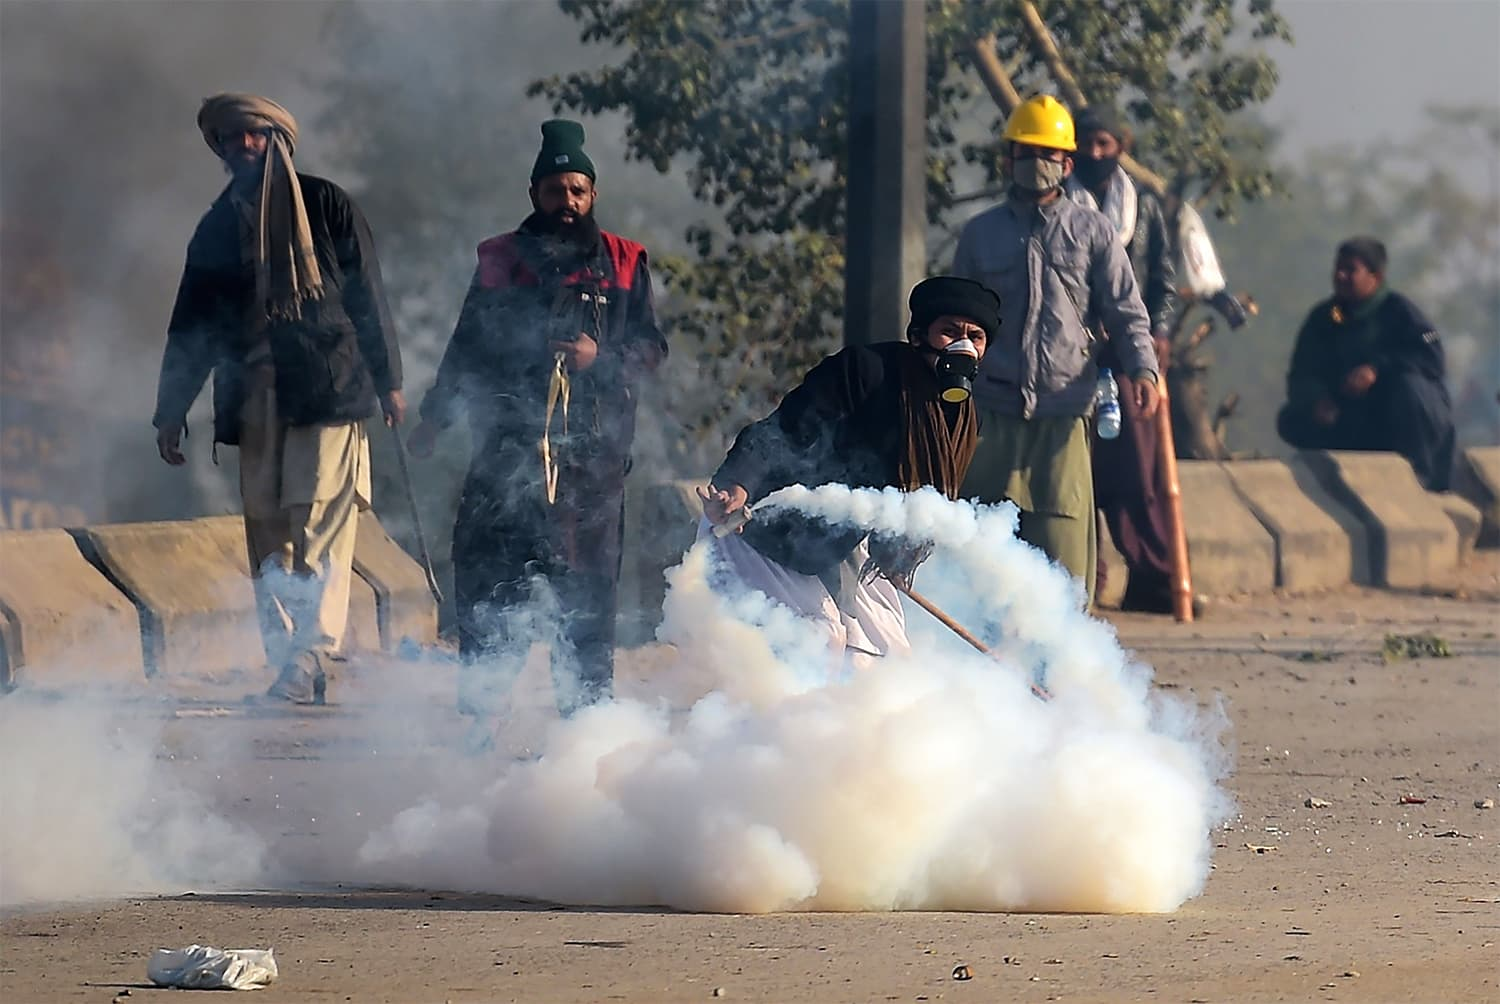 A TLY protester throws a tear gas shell back towards police during a clash in Islamabad. ─ AFP